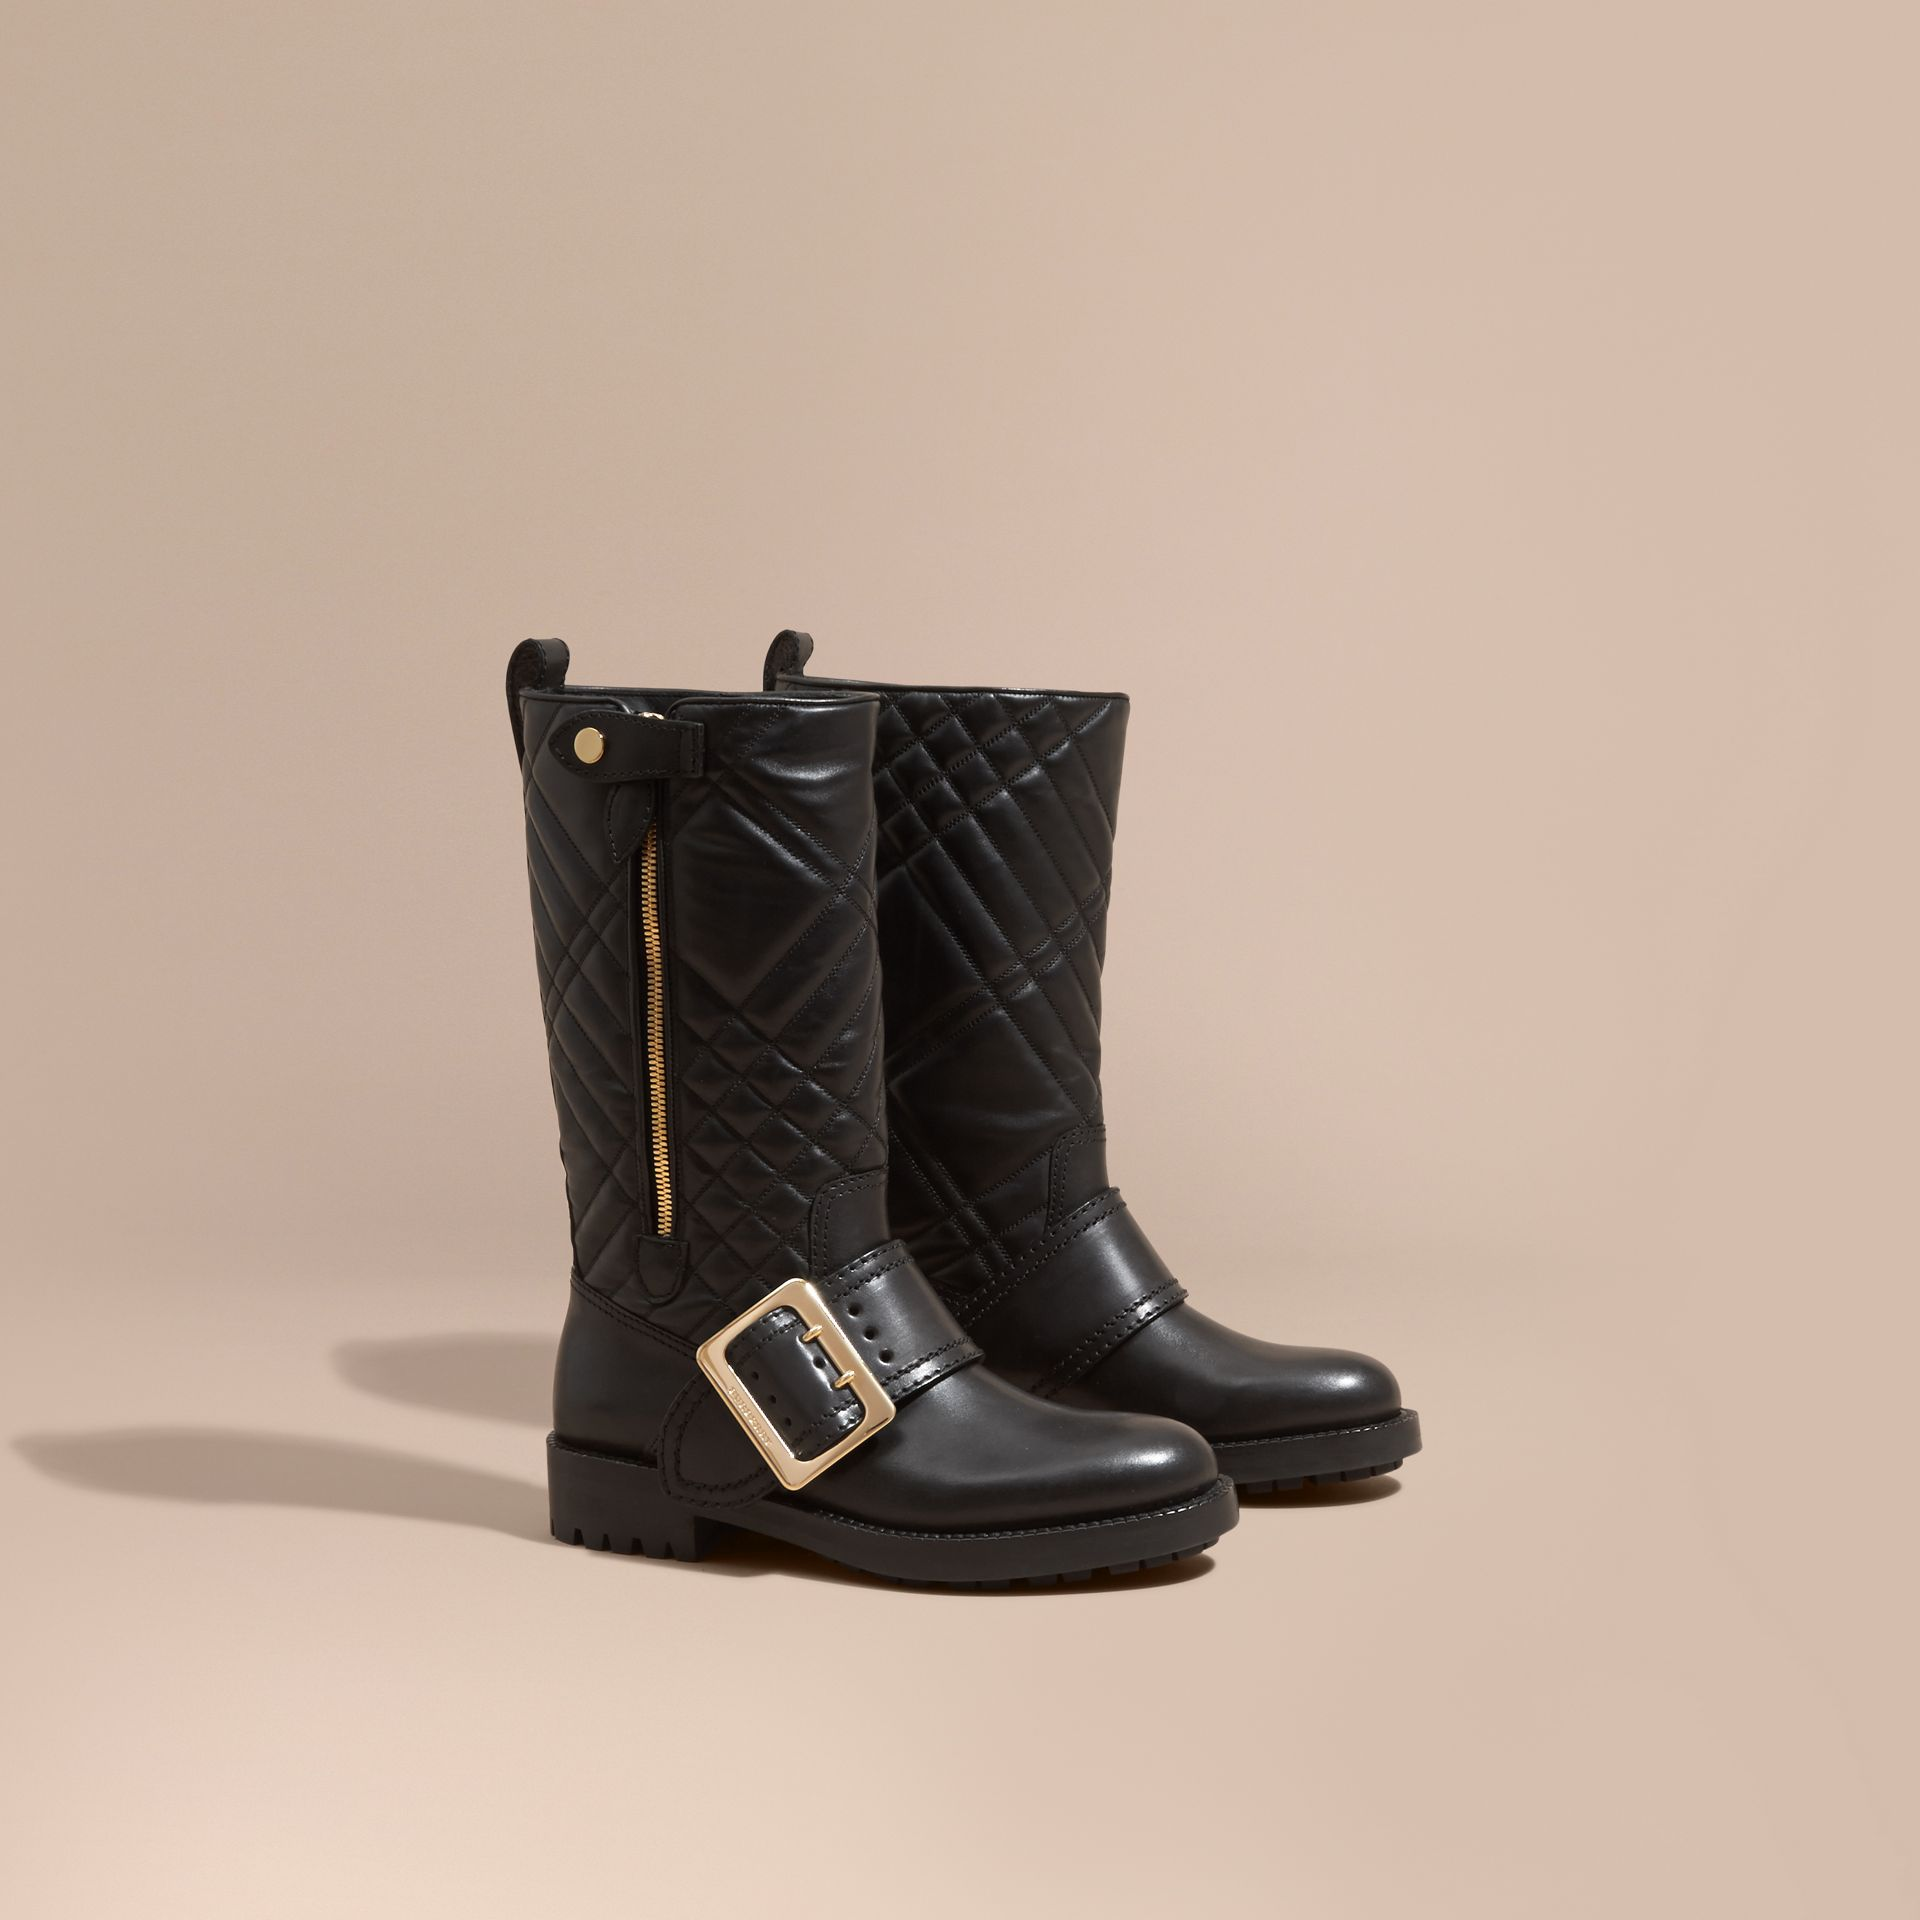 Buckle Detail Check Quilted Leather Boots in Black - Women | Burberry - gallery image 1